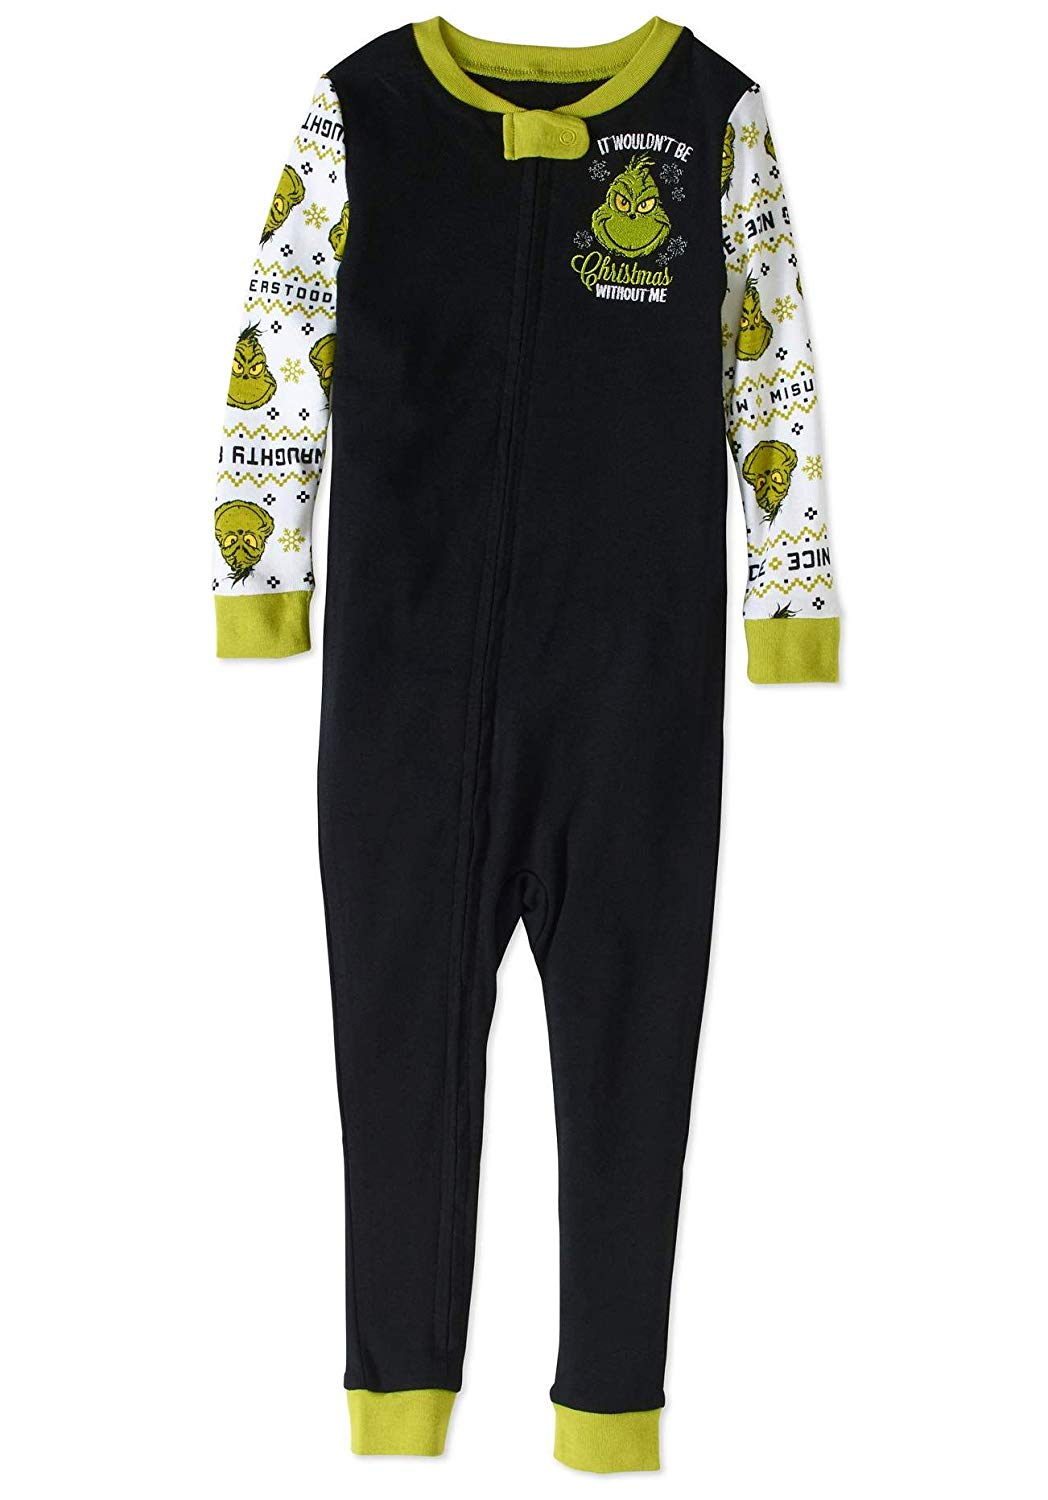 8566311c83 Get Quotations · The Grinch Christmas Holiday Pajamas Baby Toddler Unisex  Footless Sleeper